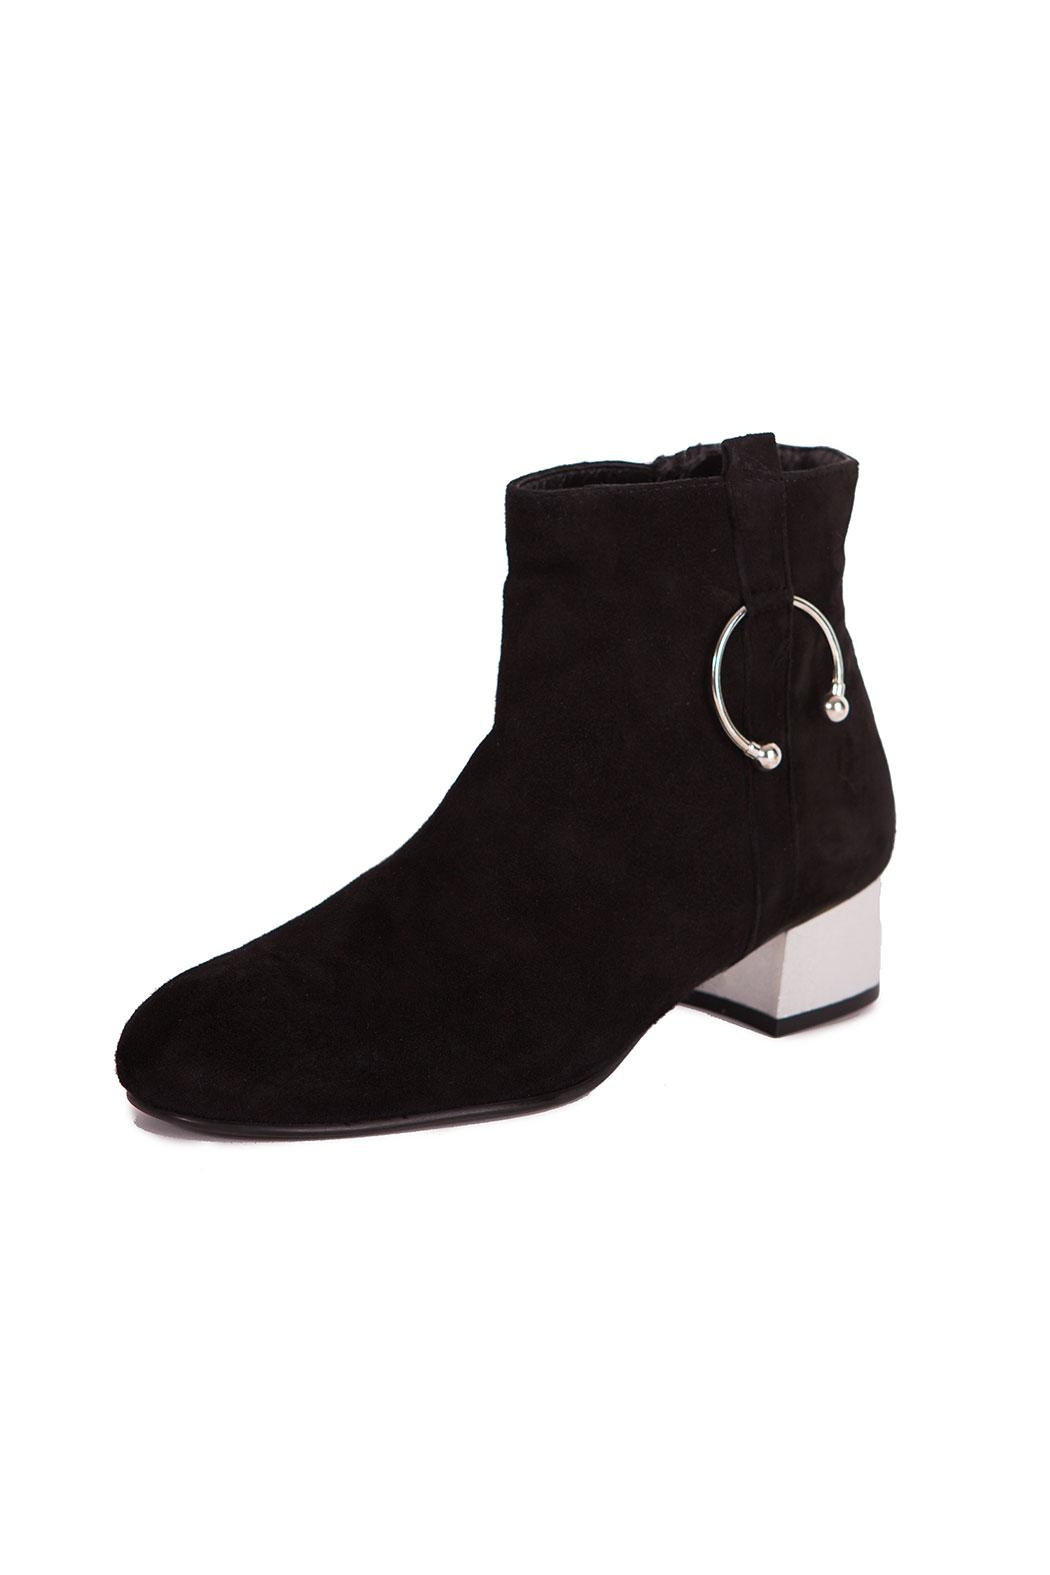 Pixy Milano Black Leather Boots - Front Cropped Image